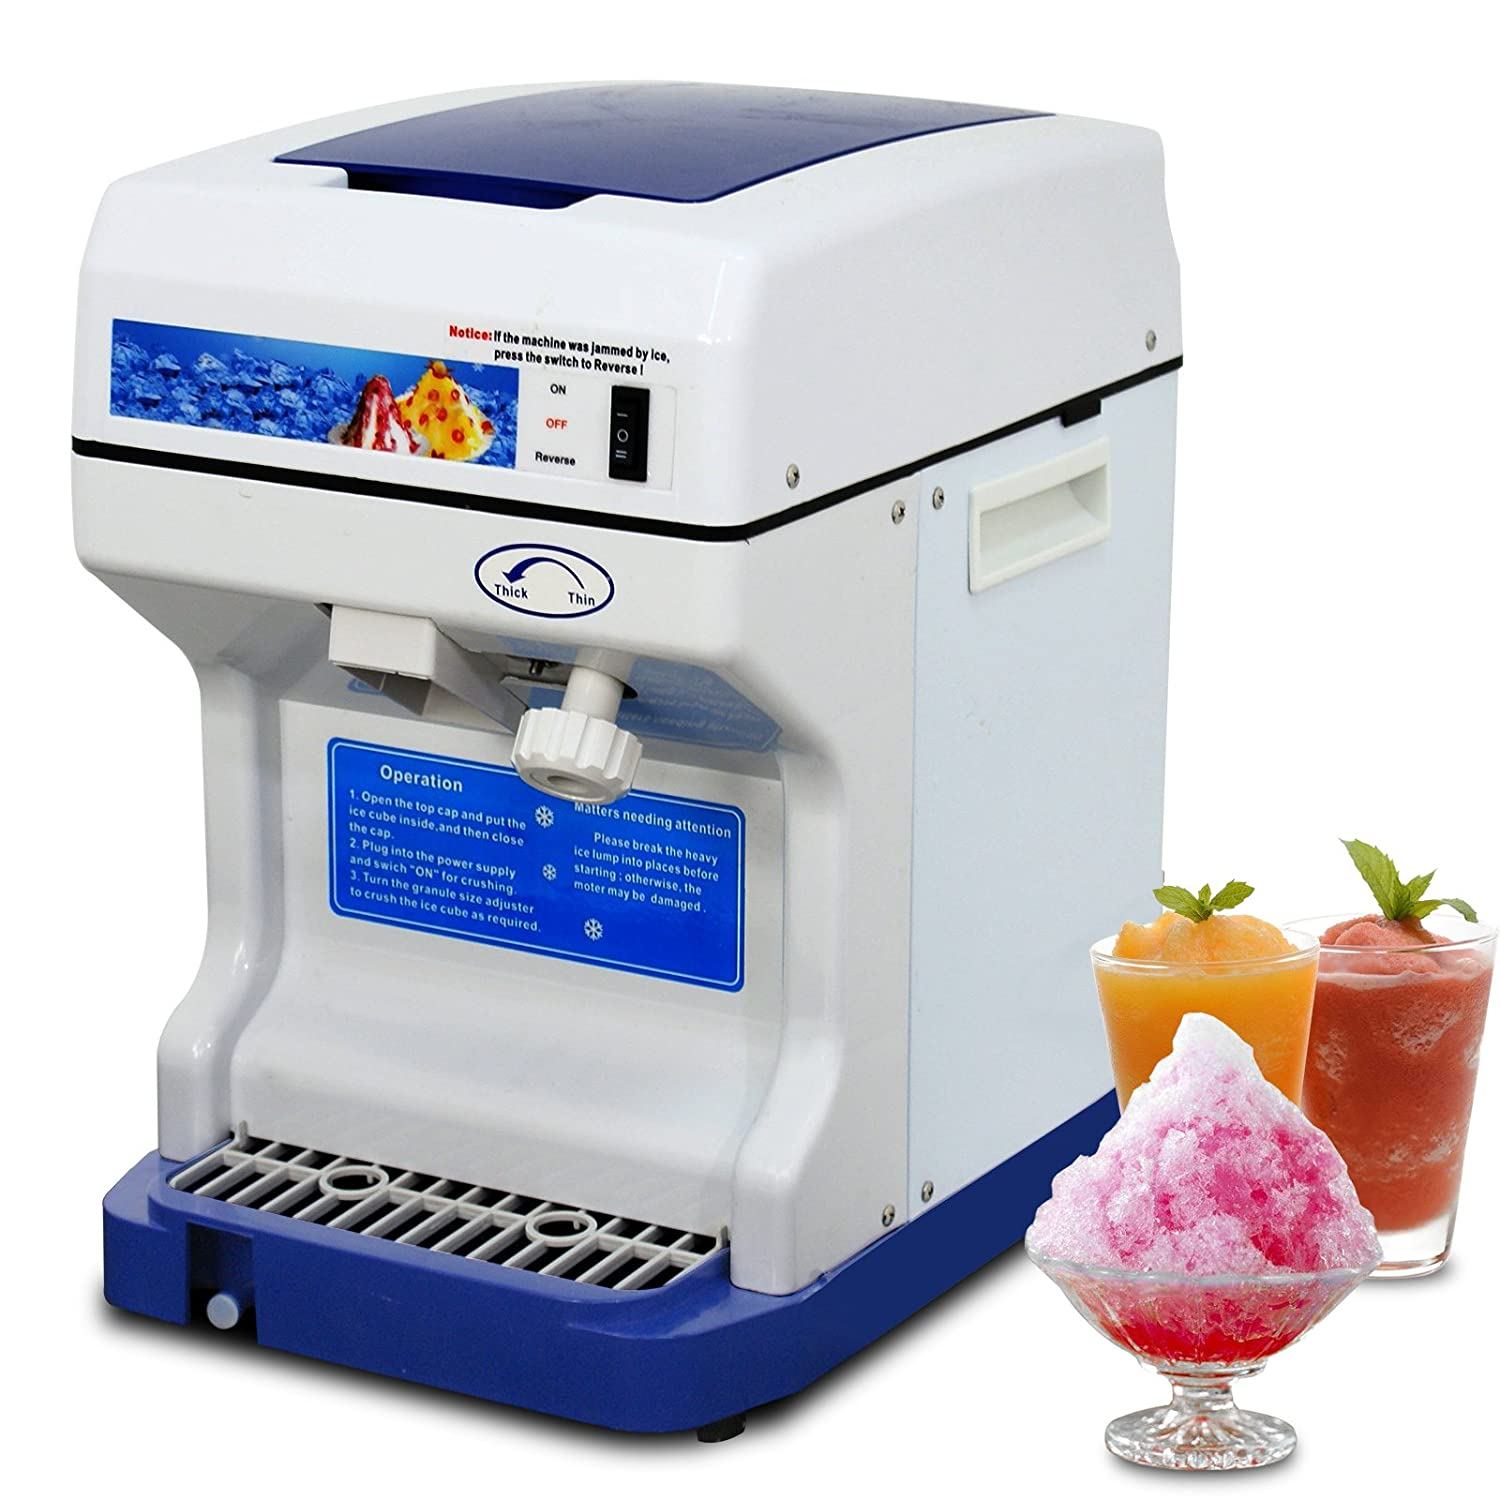 Top 9 Best Kids Snowcones Machine Reviews in 2021 17